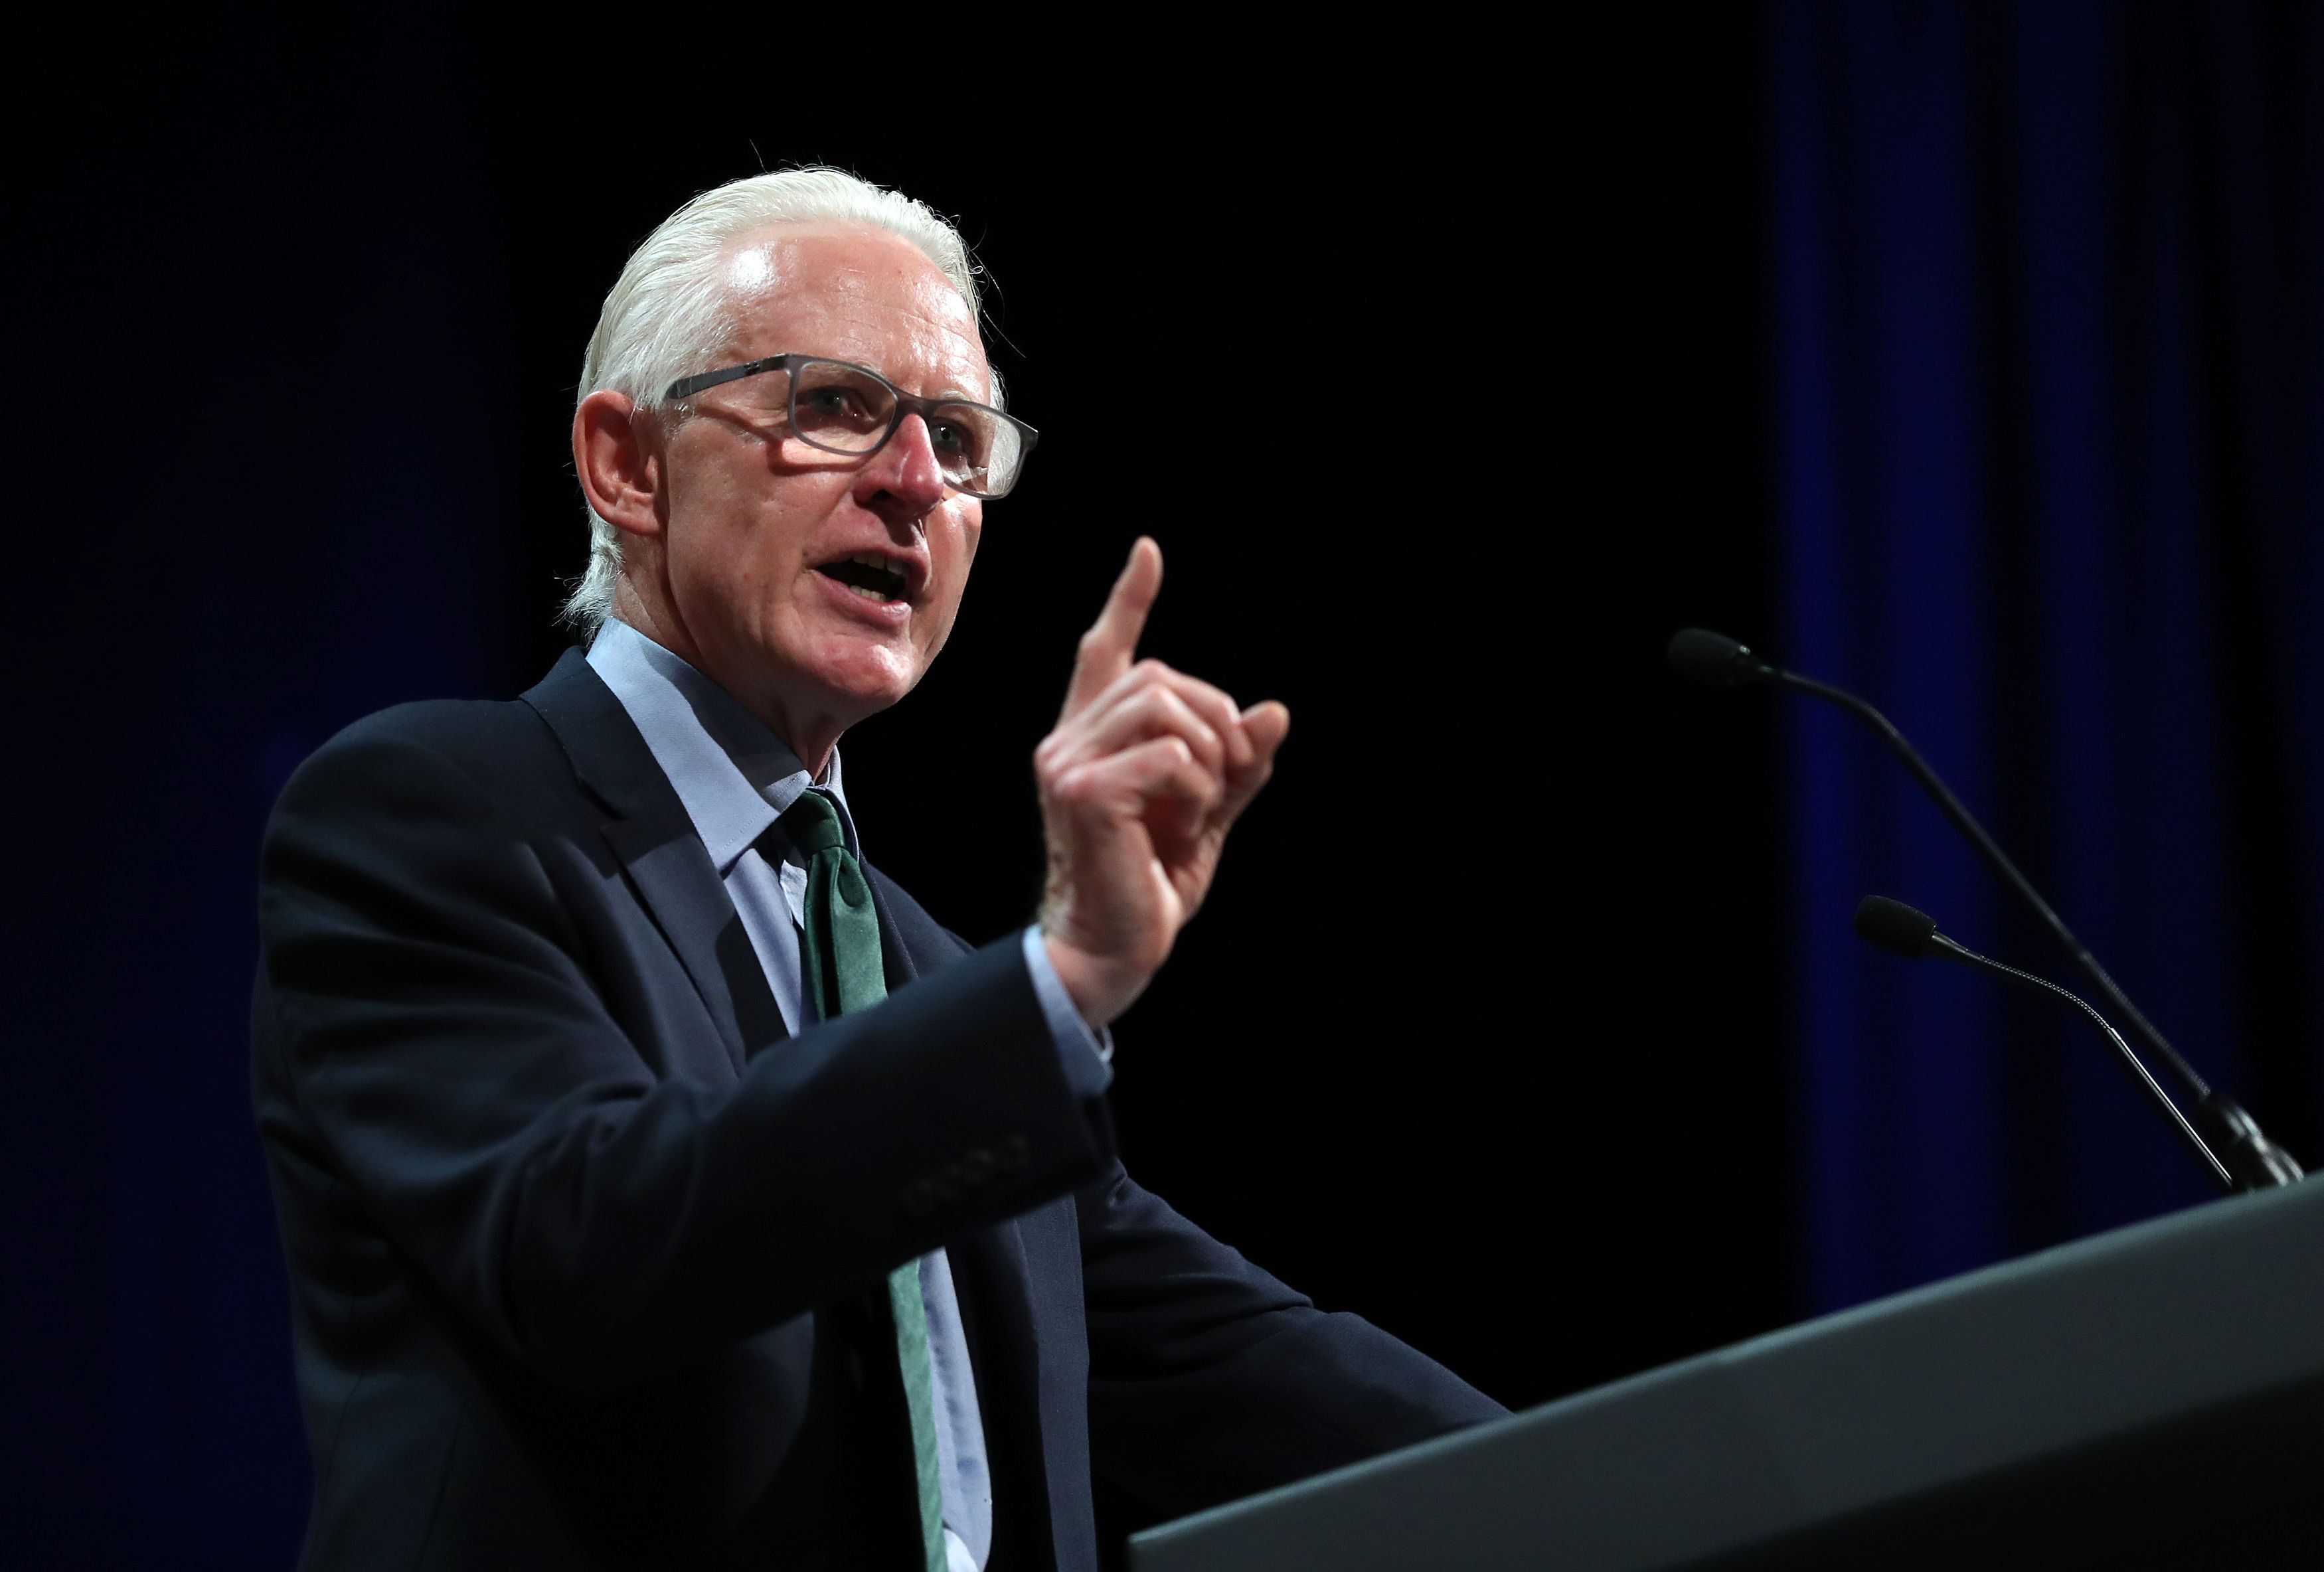 Norman Lamb says the government is failing young people.